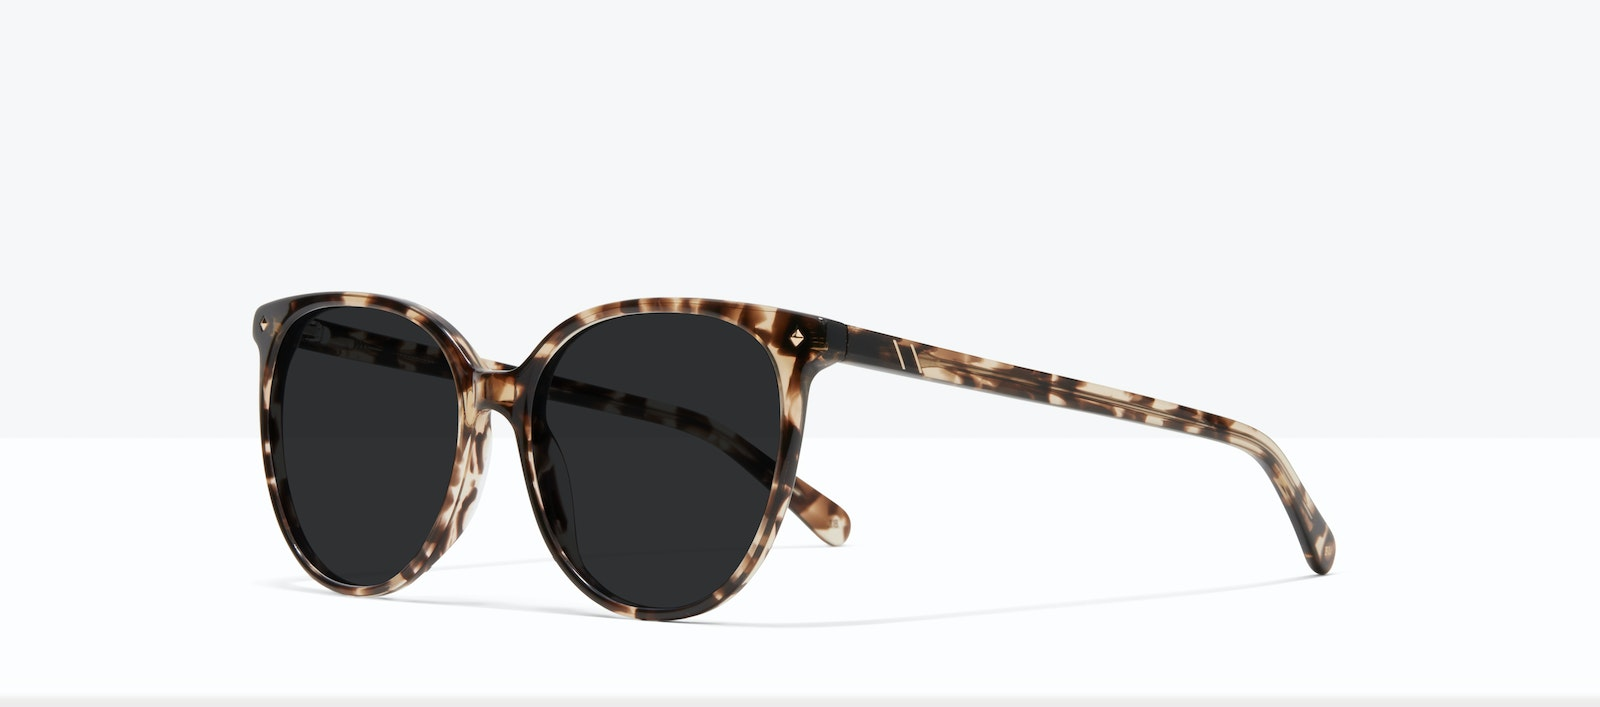 Affordable Fashion Glasses Round Sunglasses Women Area L Leopard Tilt